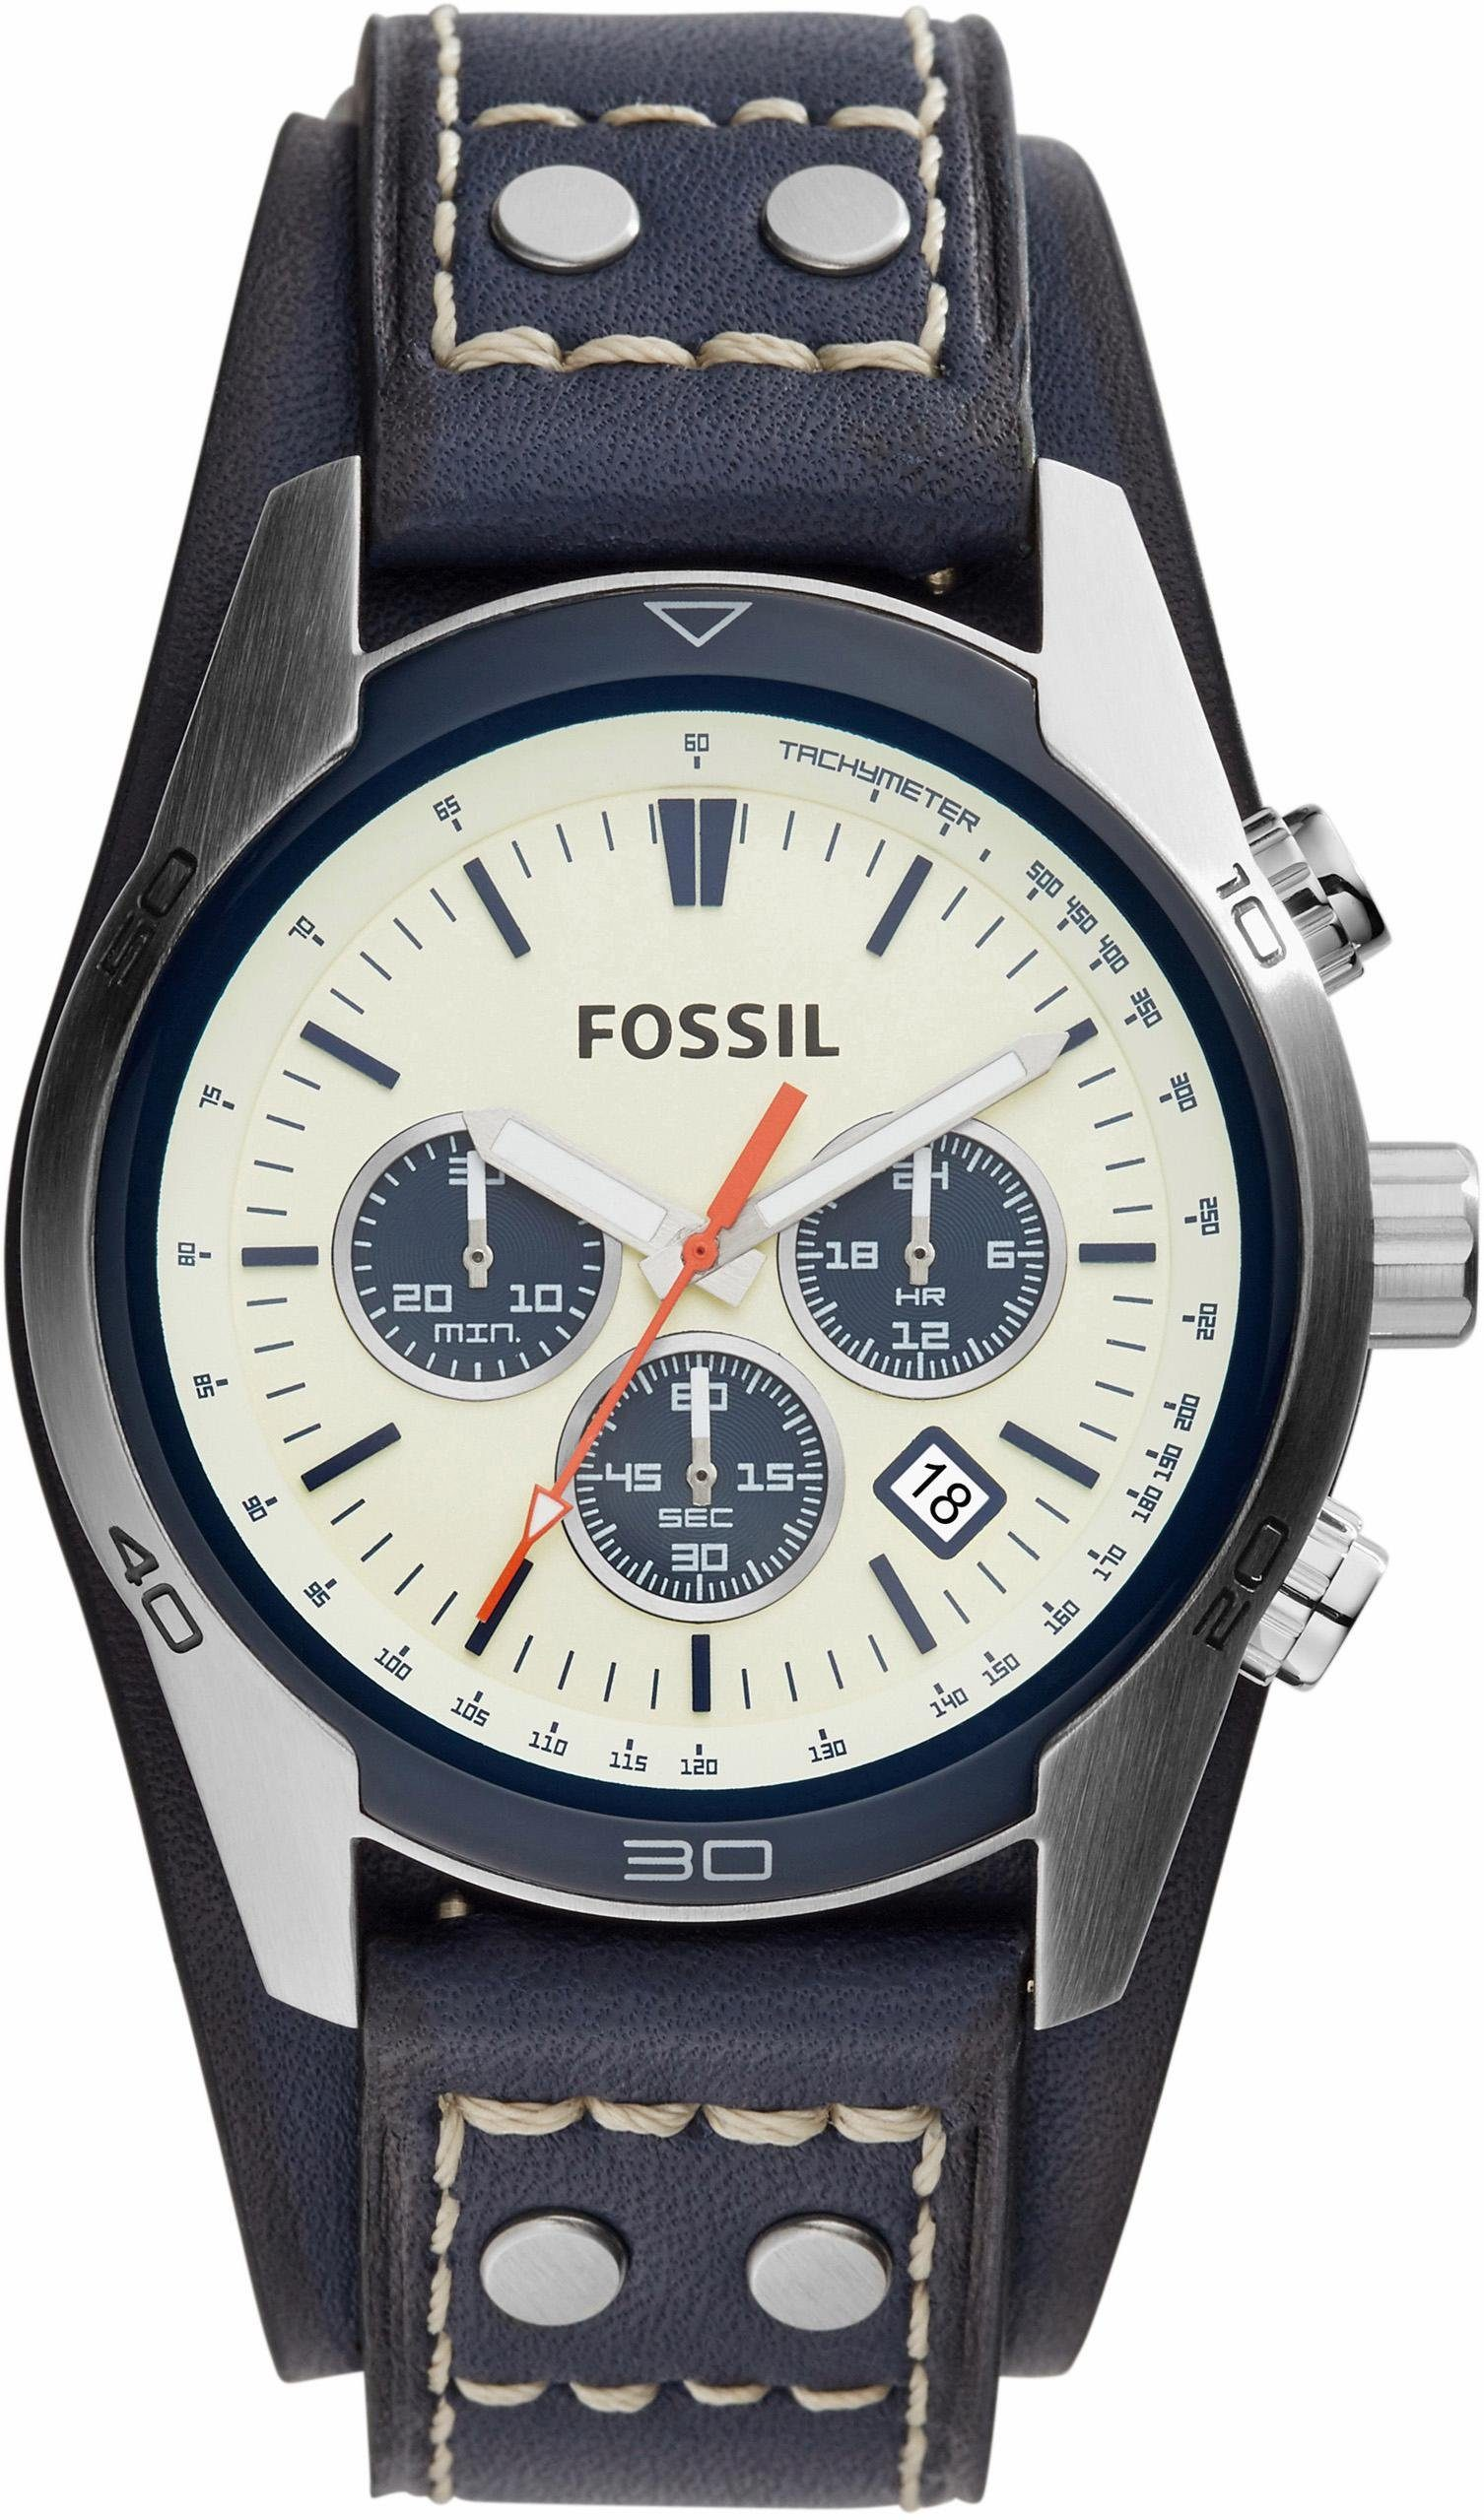 Fossil Chronograph »COACHMAN, CH3051«